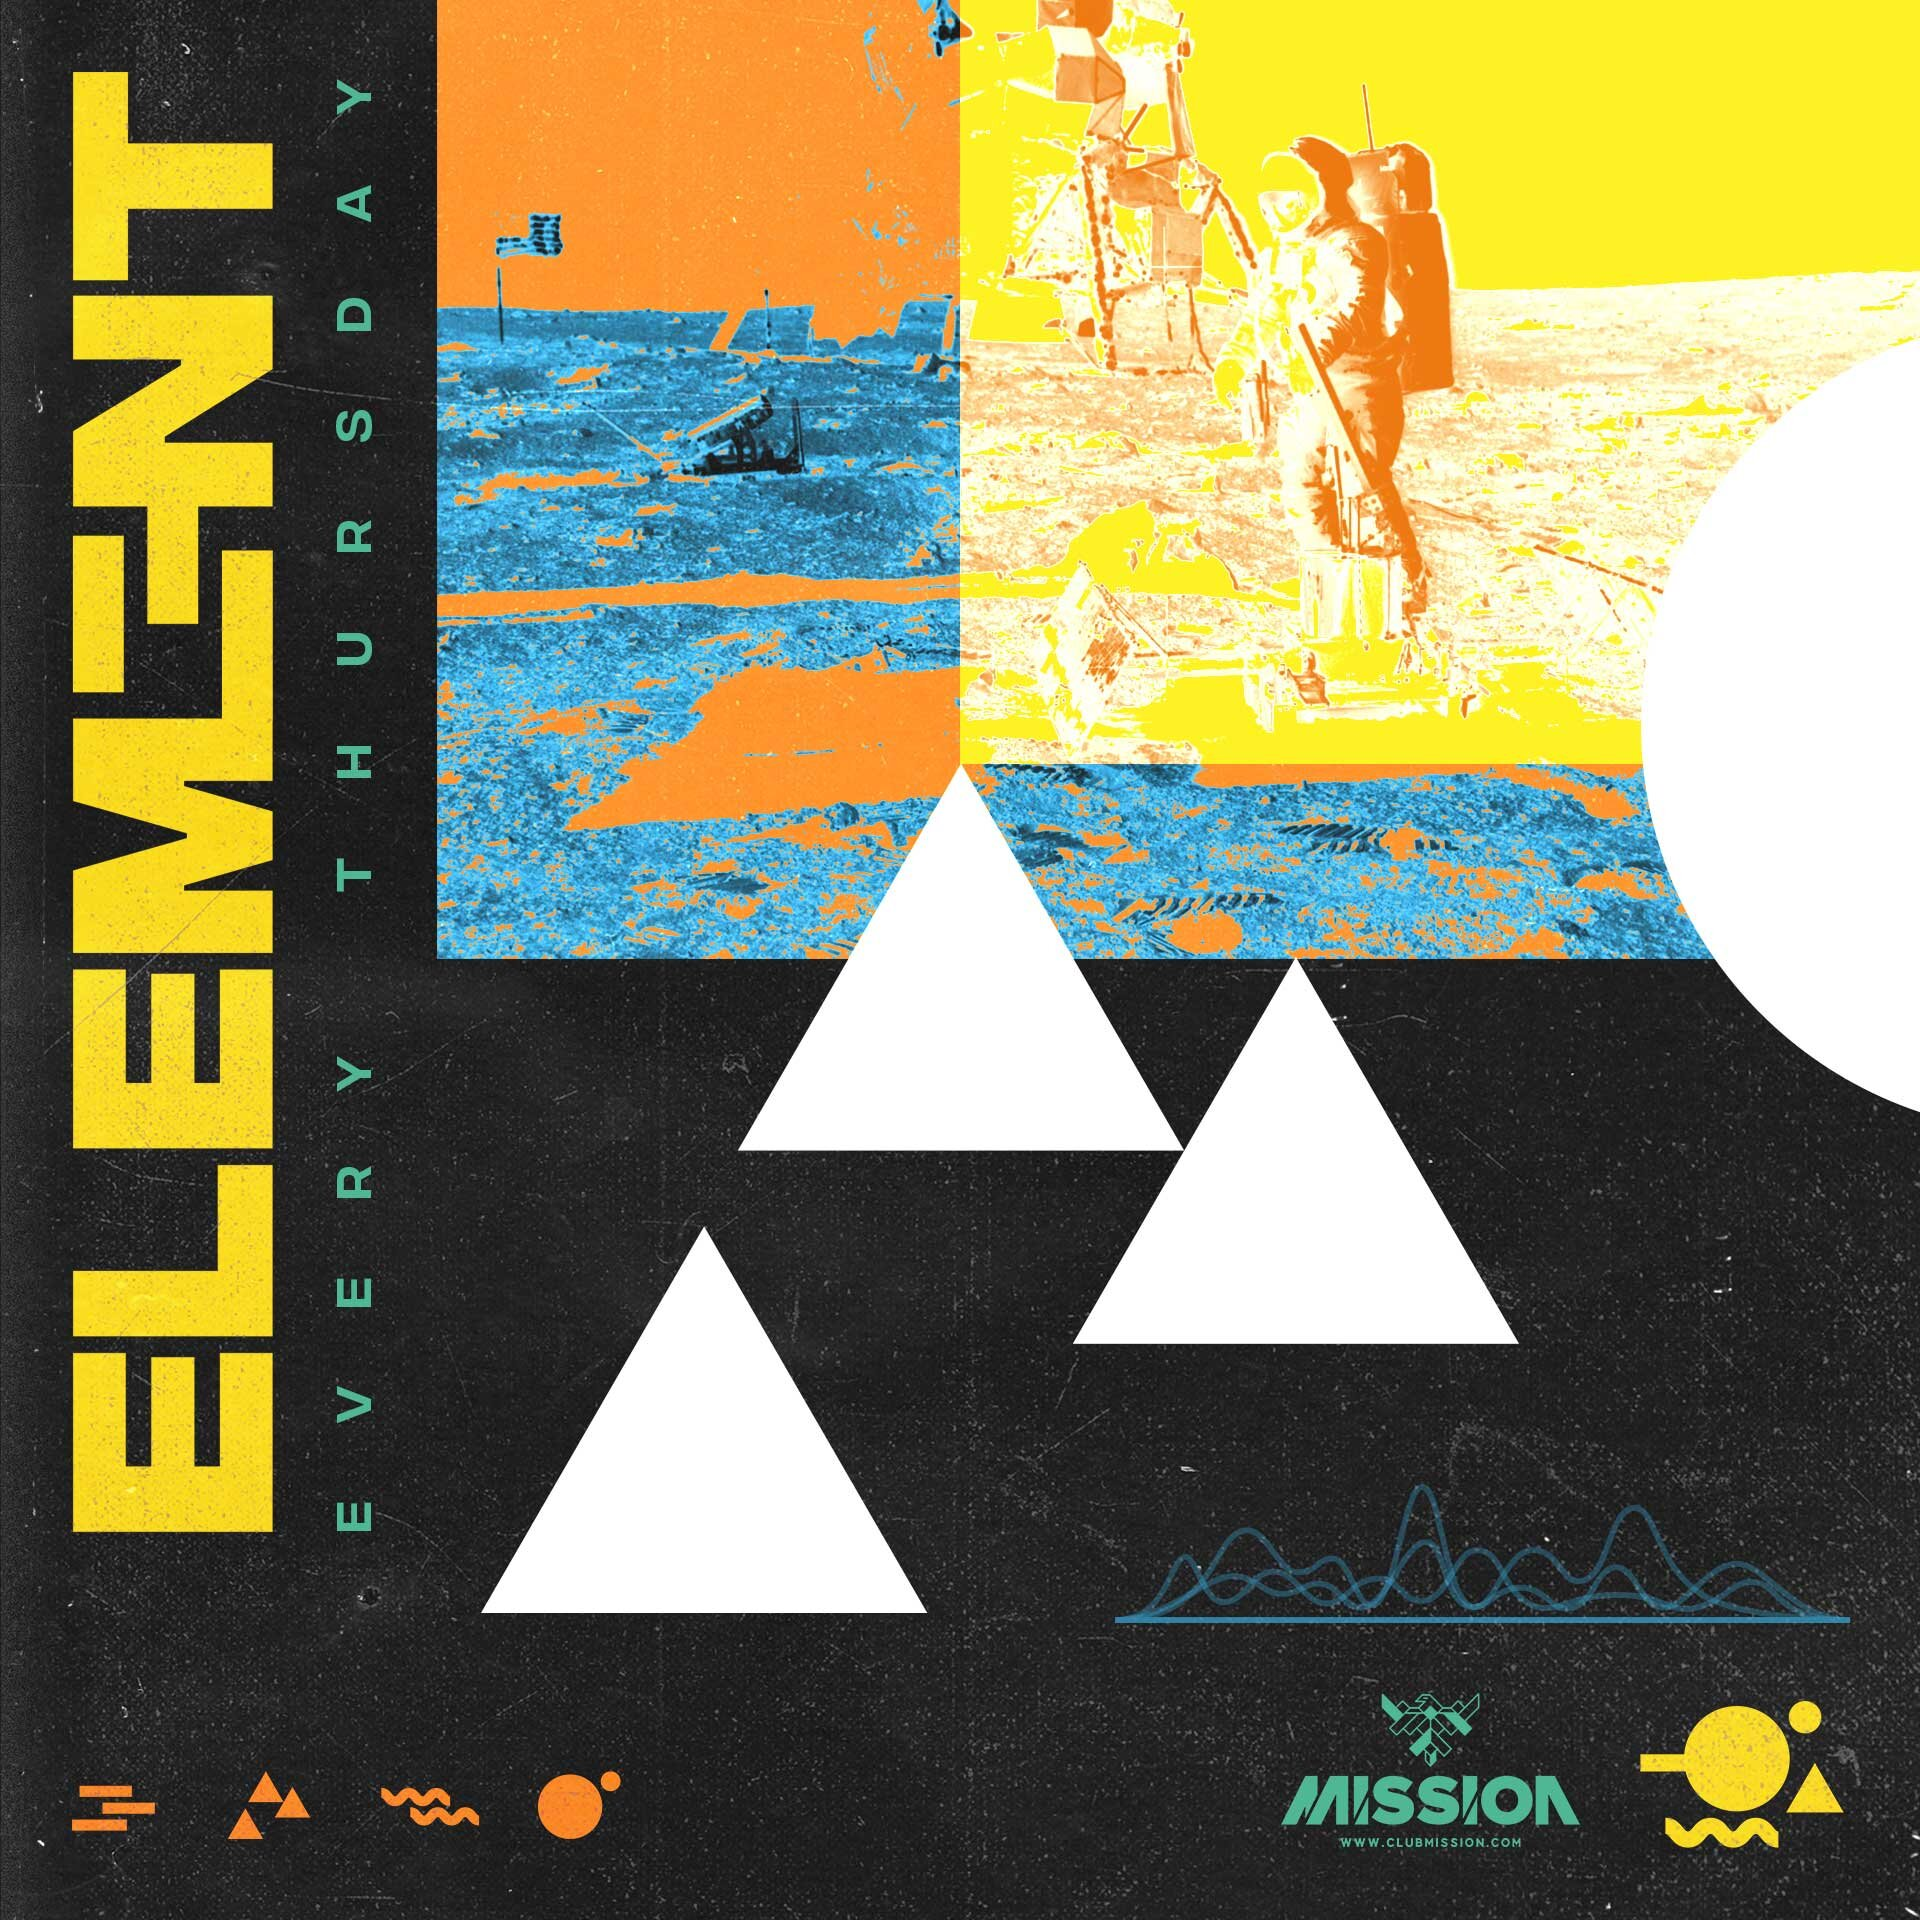 ELEMENTEVERY THURSDAY - What are the Elements that make a great event? We've stripped back right down to the foundations, providing a quality atmosphere through production, sound & crowd.£3 Fosters£3 Sambuca/Tequila (3 for £6)£3 Double Spirit and Mixer: Vodka, Gin, Bacardi or Captain Morgan's SpicedPLUS: Free admission to 'AFTAS' if you've already been at ELEMENT.22:30PM - 6AM